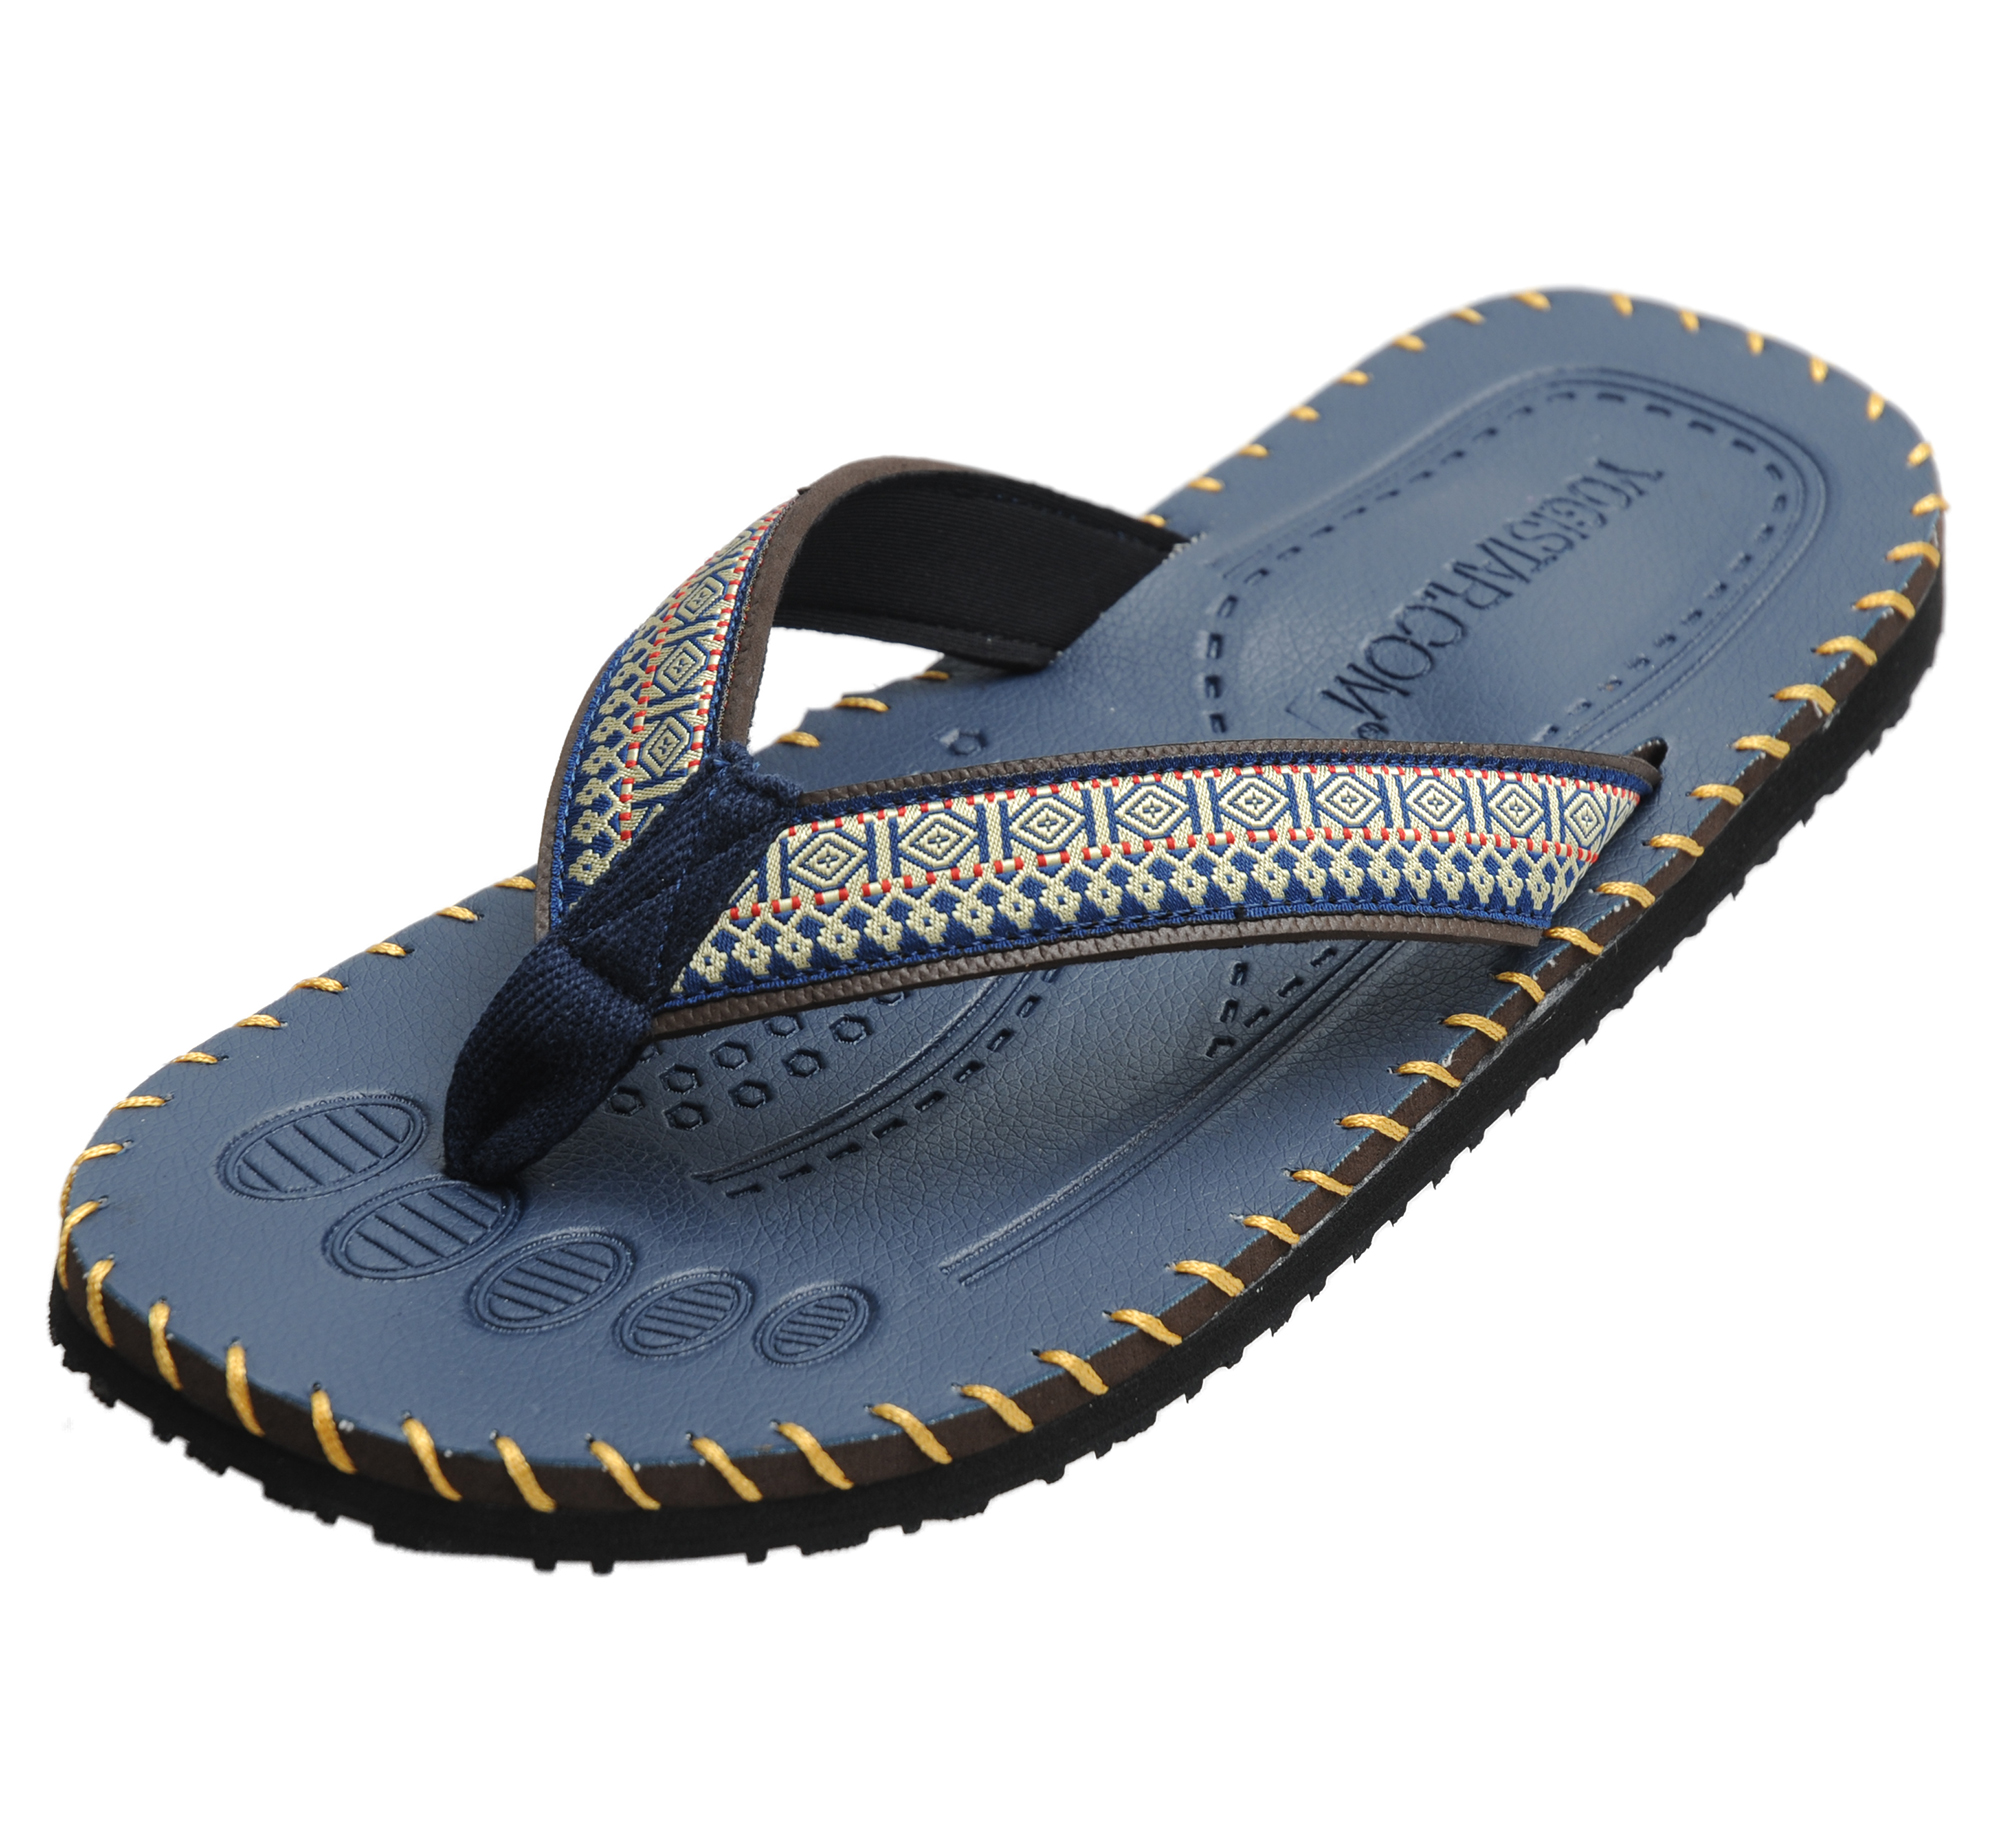 Yoga-Sandalen men - navy blue